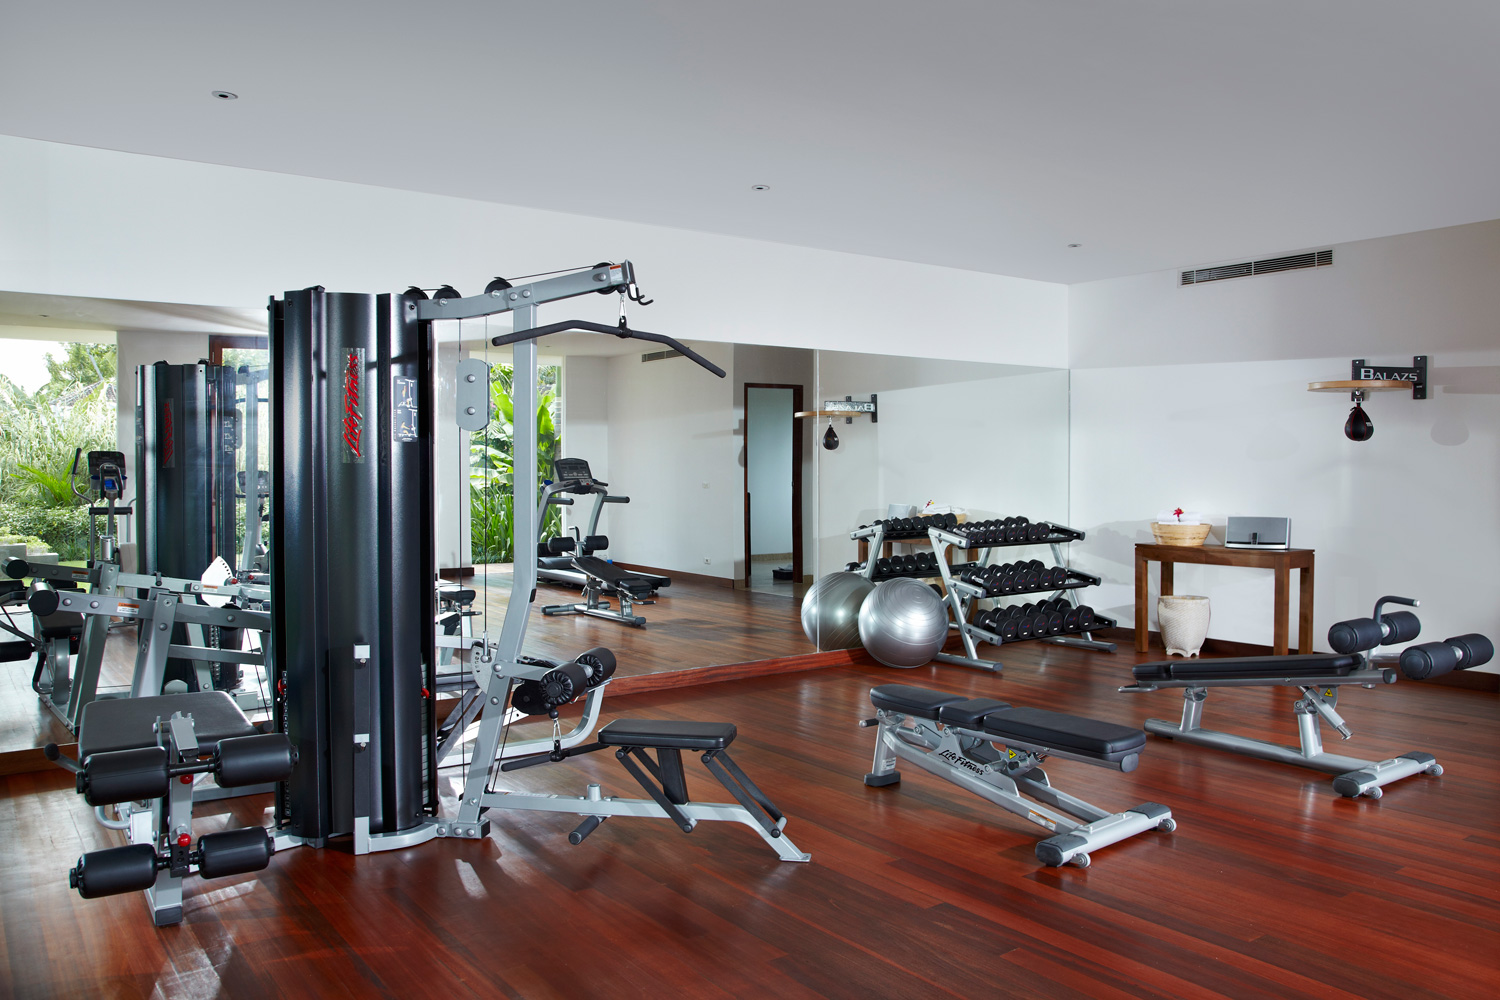 Gym_Facilities